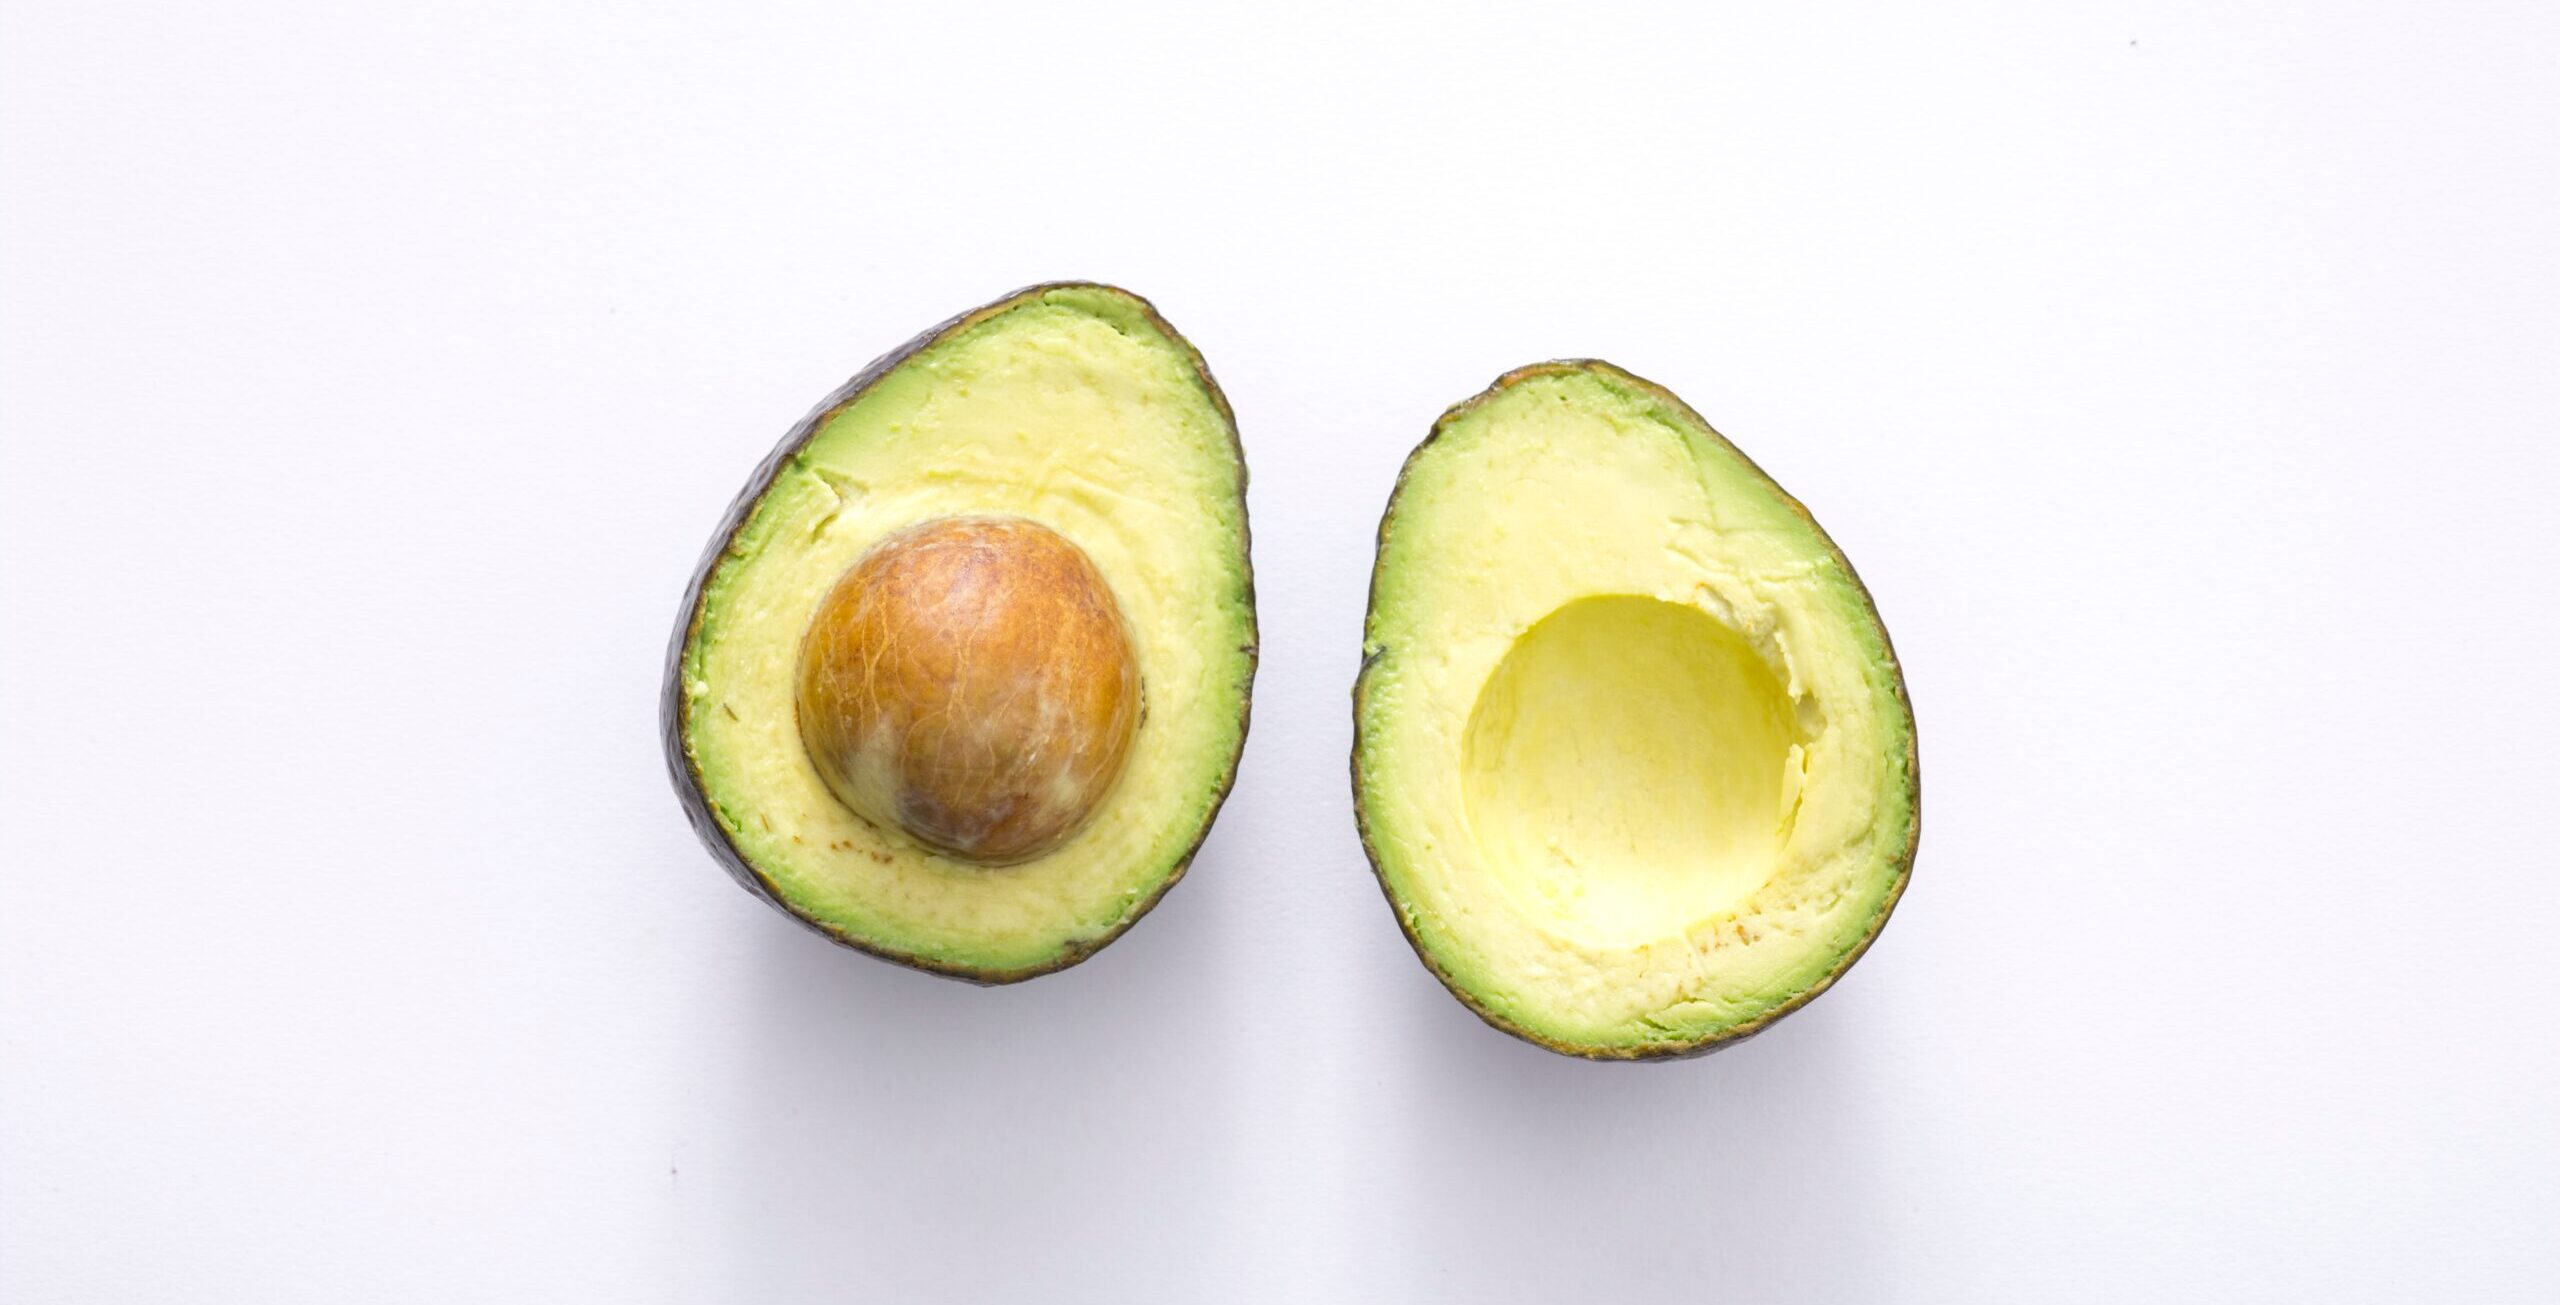 Avocados are staple foods with healthy fats